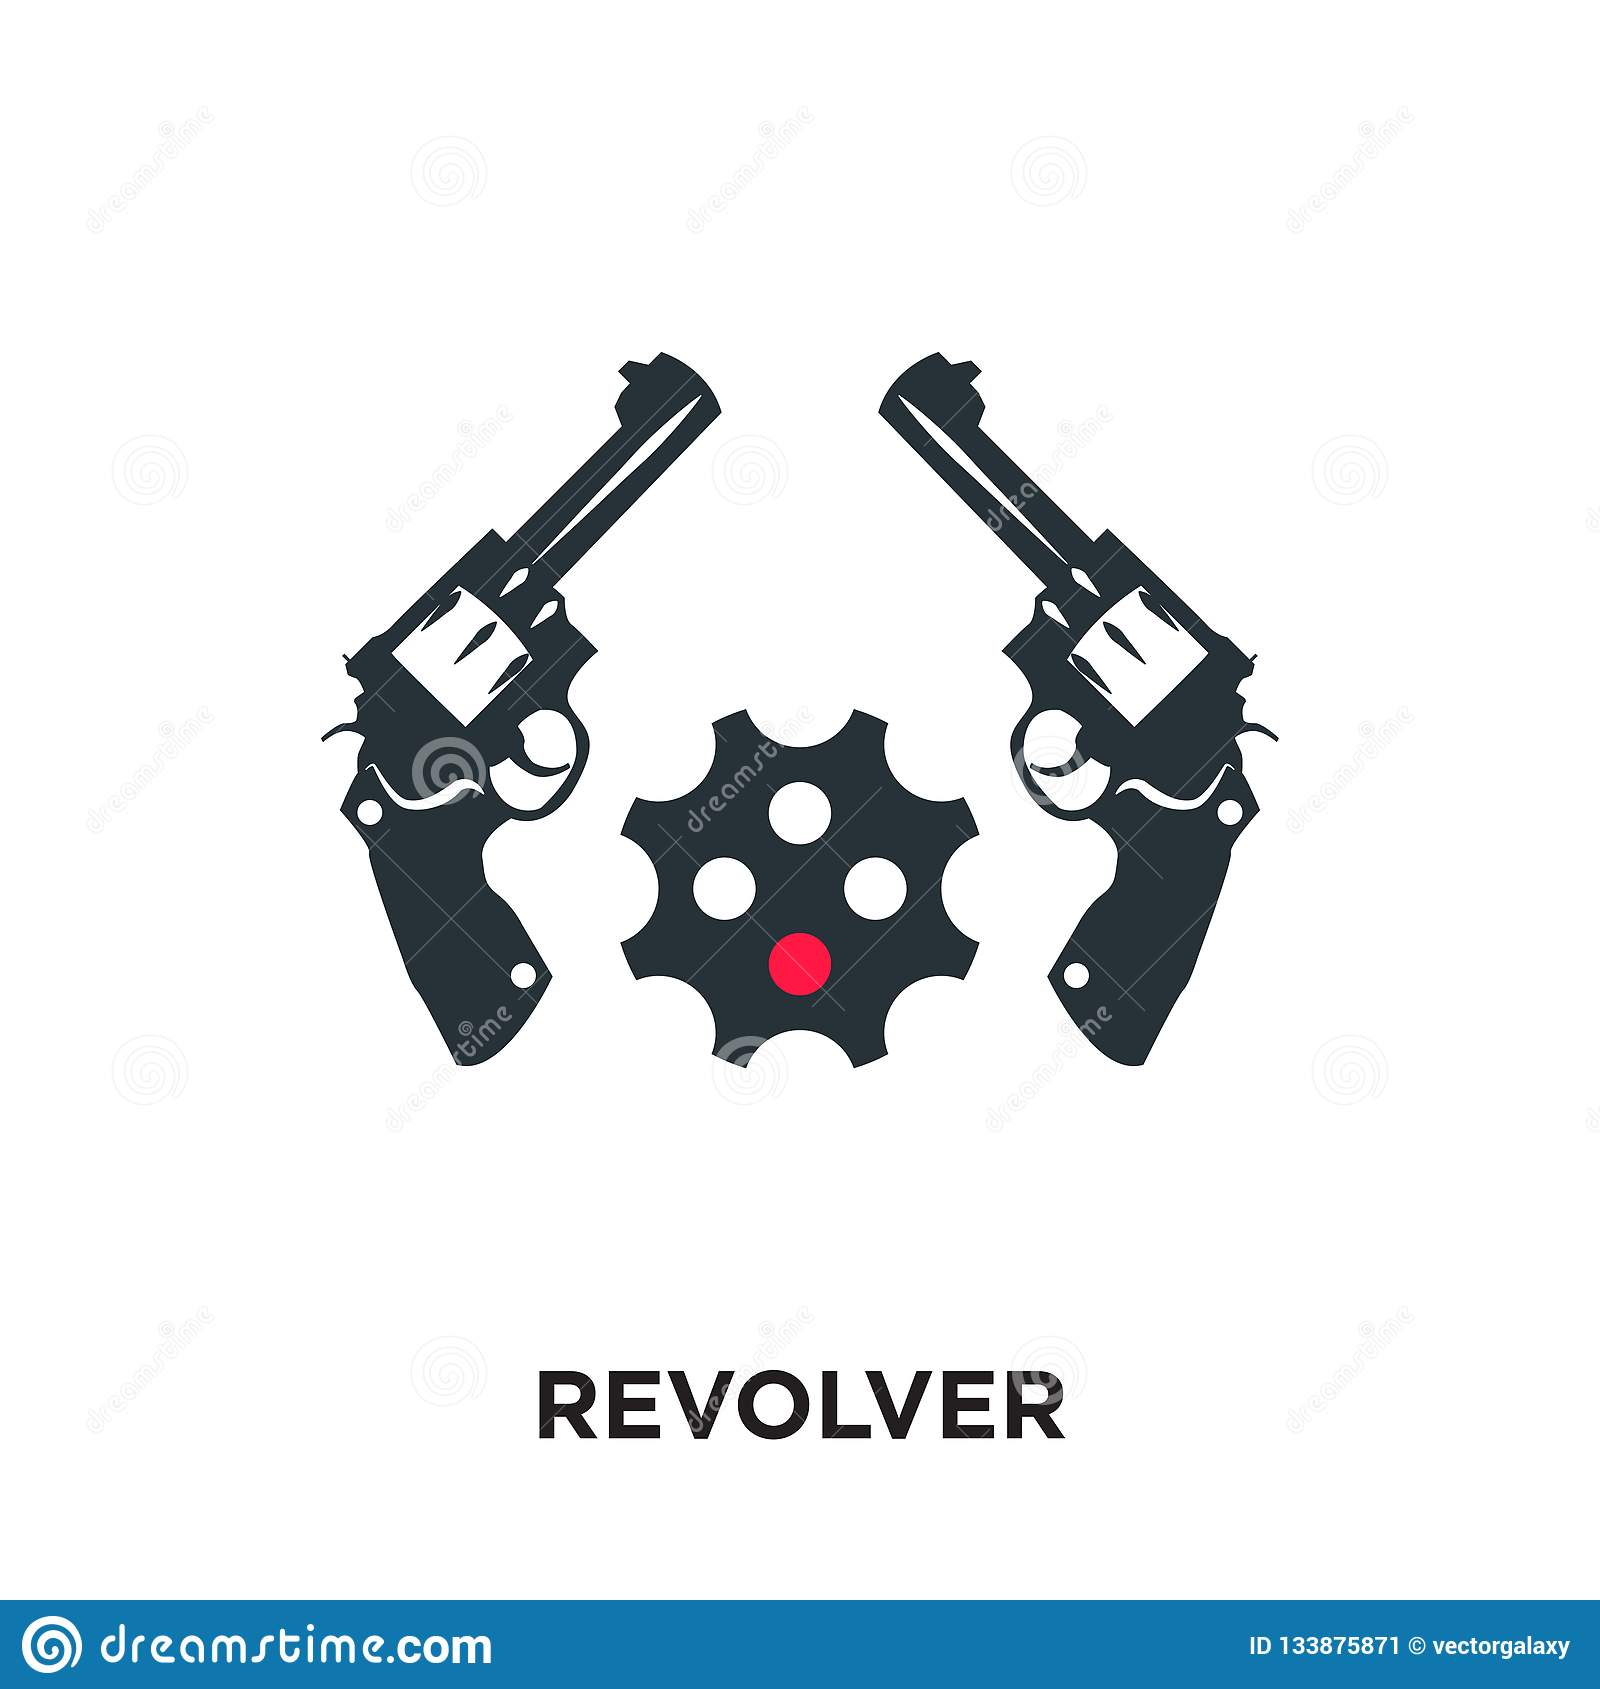 revolver logo isolated on white background for your web, mobile